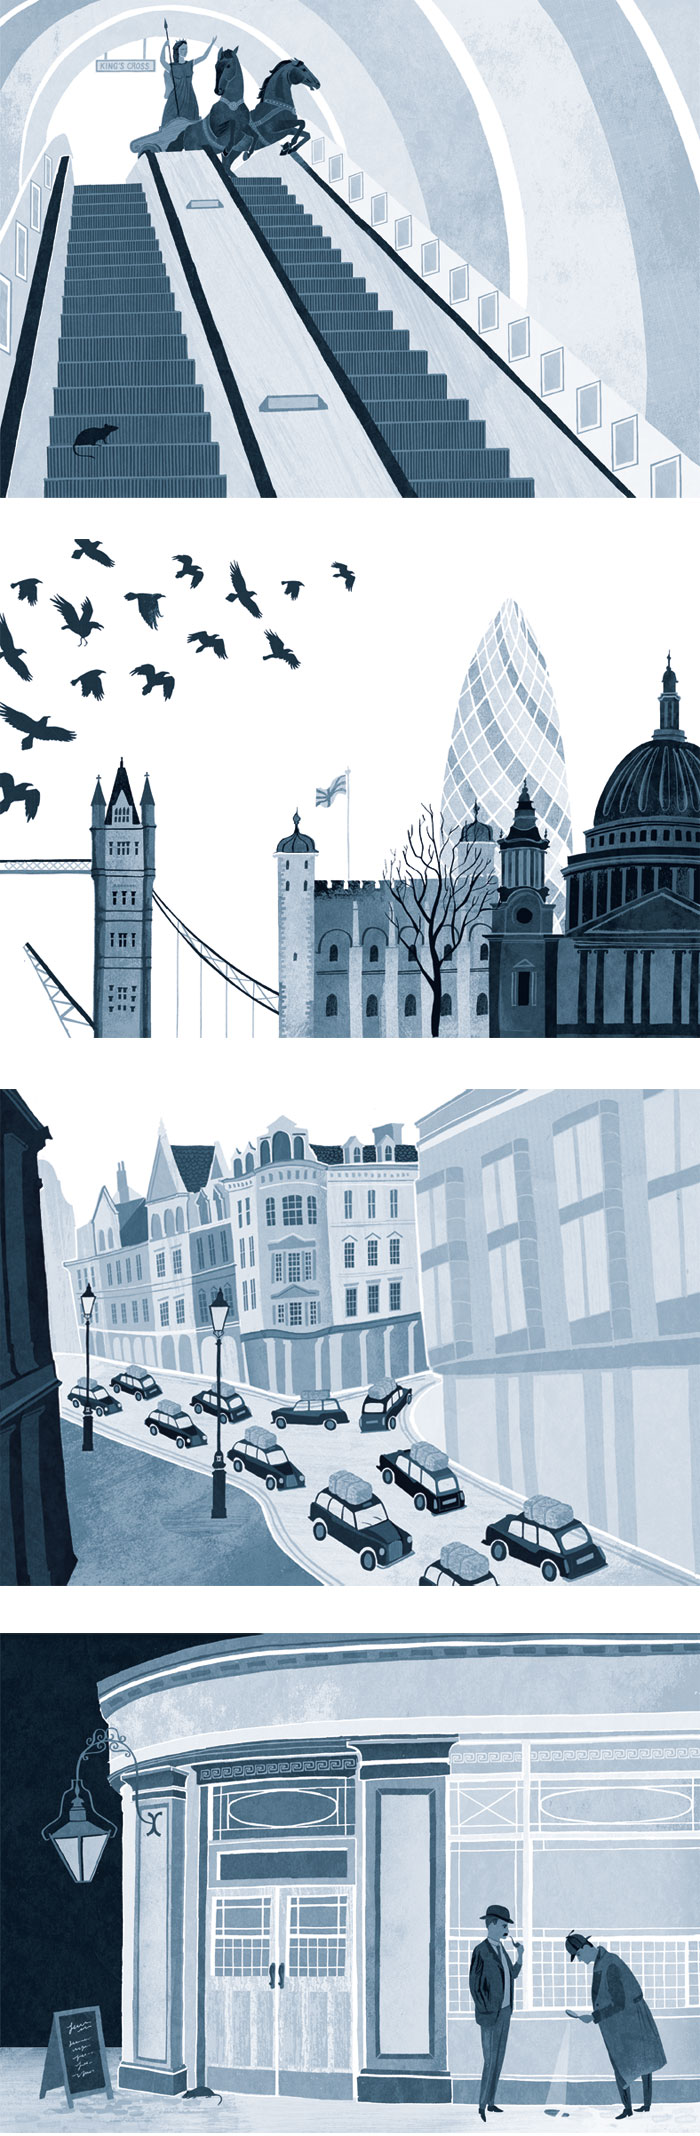 London illustration graphics. Black and white book illustrations by Sara Mulvanny Includes: Tower Bridge, St Paul's, Tower of London, London Taxis, Sherlock Holmes, London Underground.